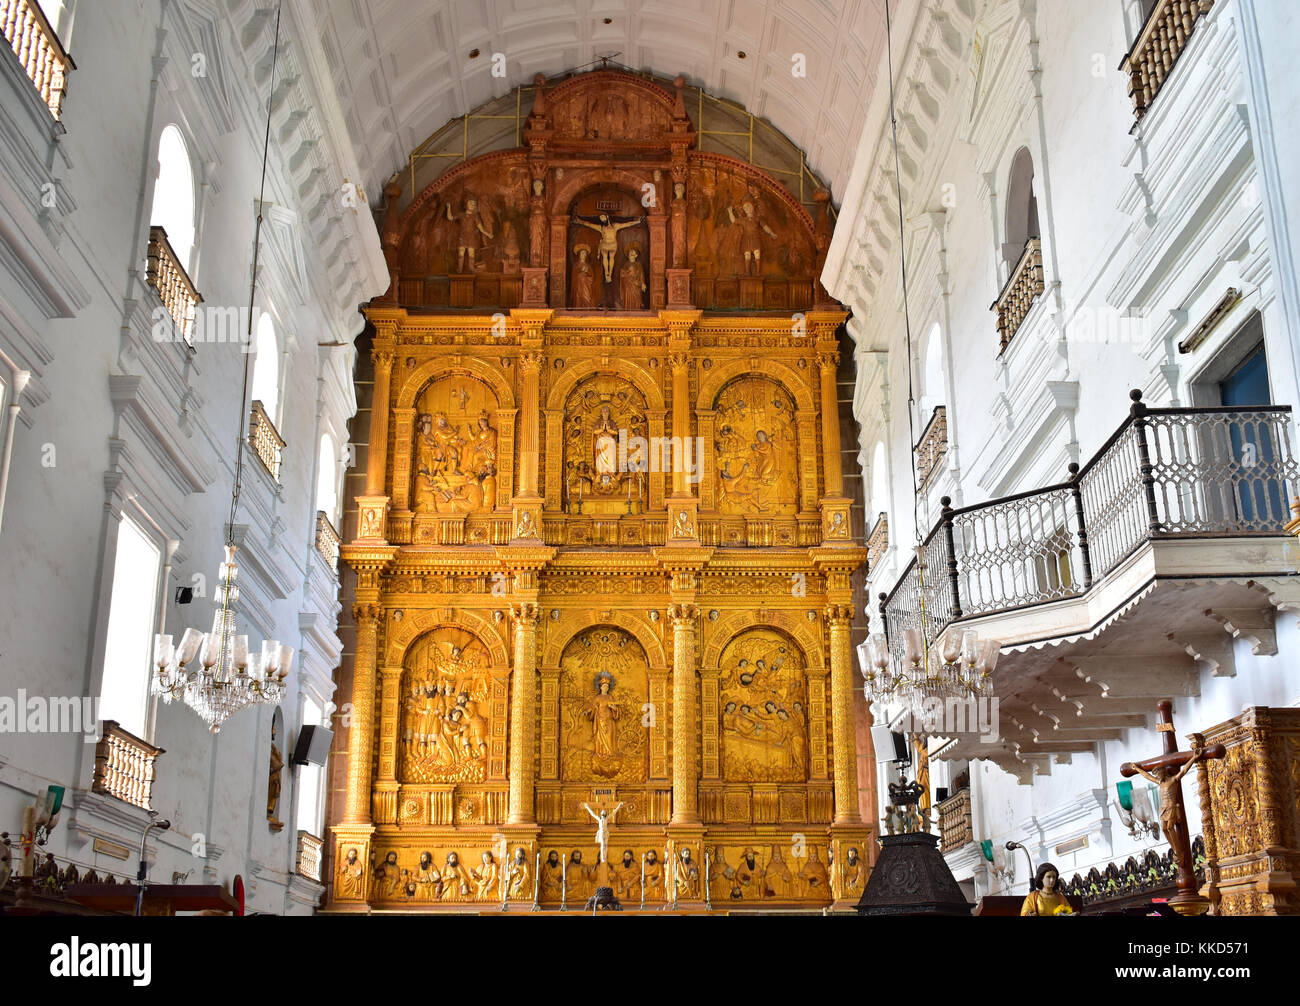 Interior view of Se Cathedral or Cathedral of St. Catherine of Alexandria, Old Goa, India. Stock Photo